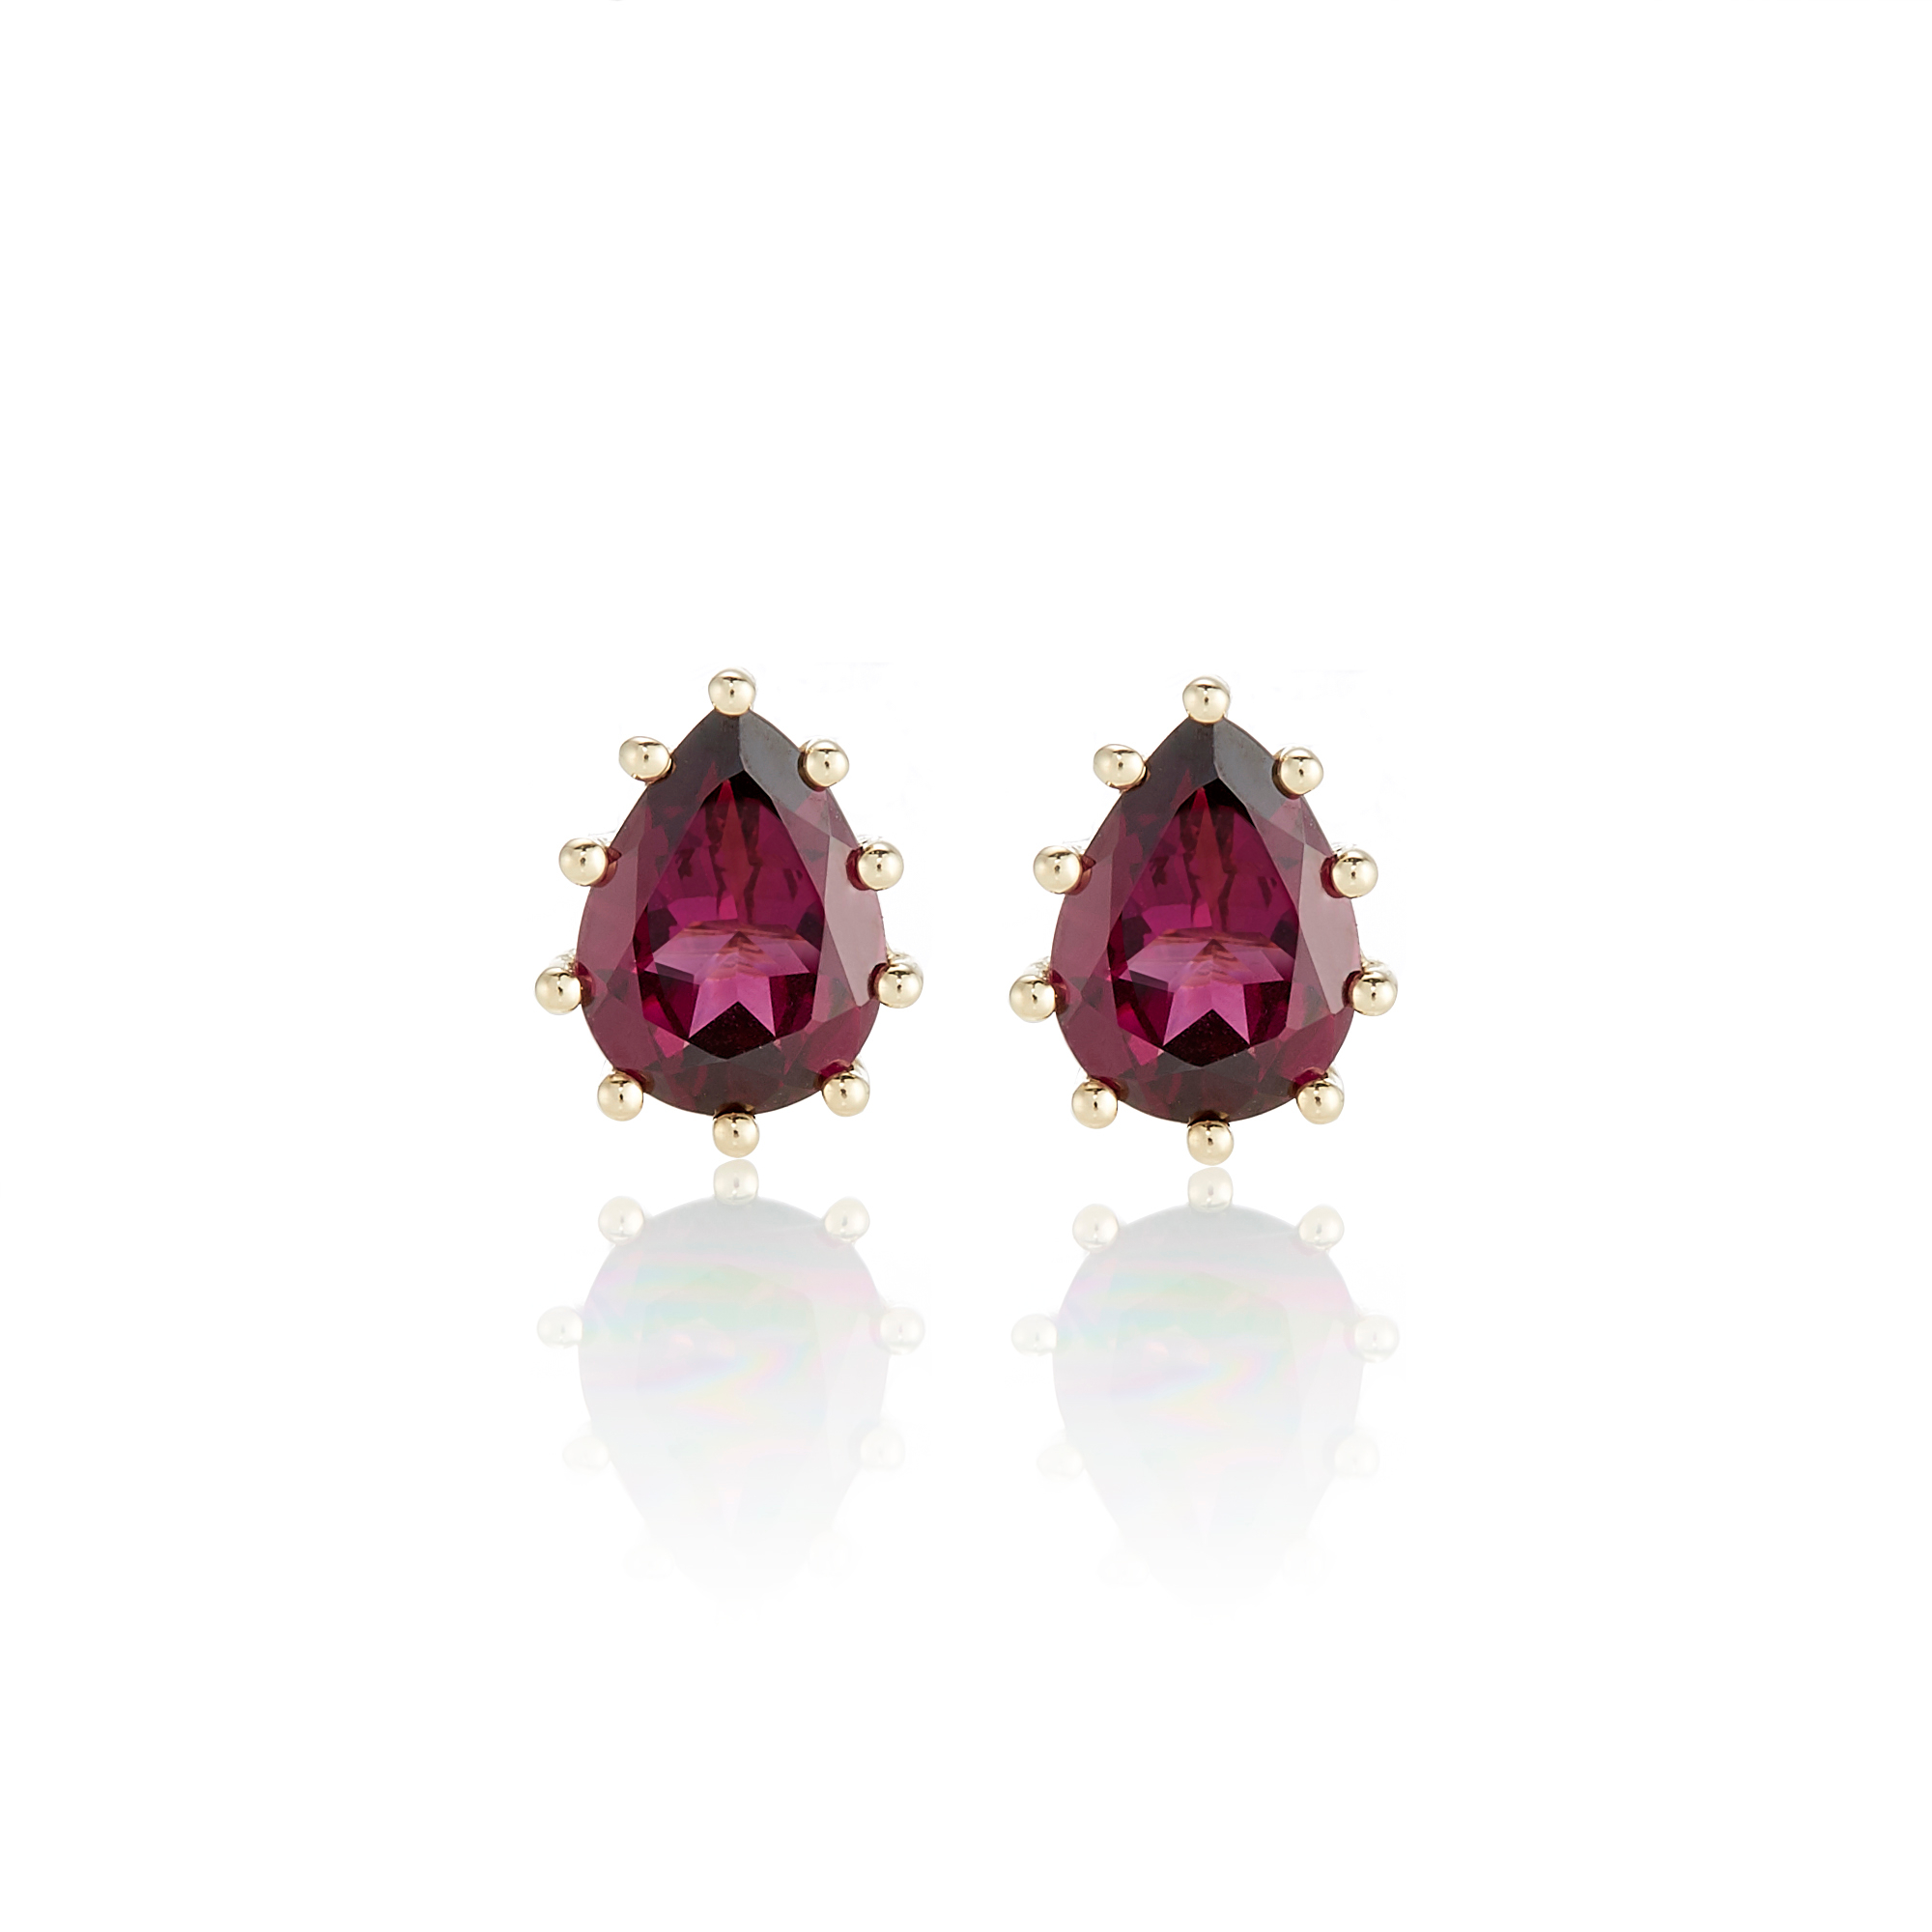 Gump's Rhodolite Garnet Teardrop Prong-Set Stud Earrings